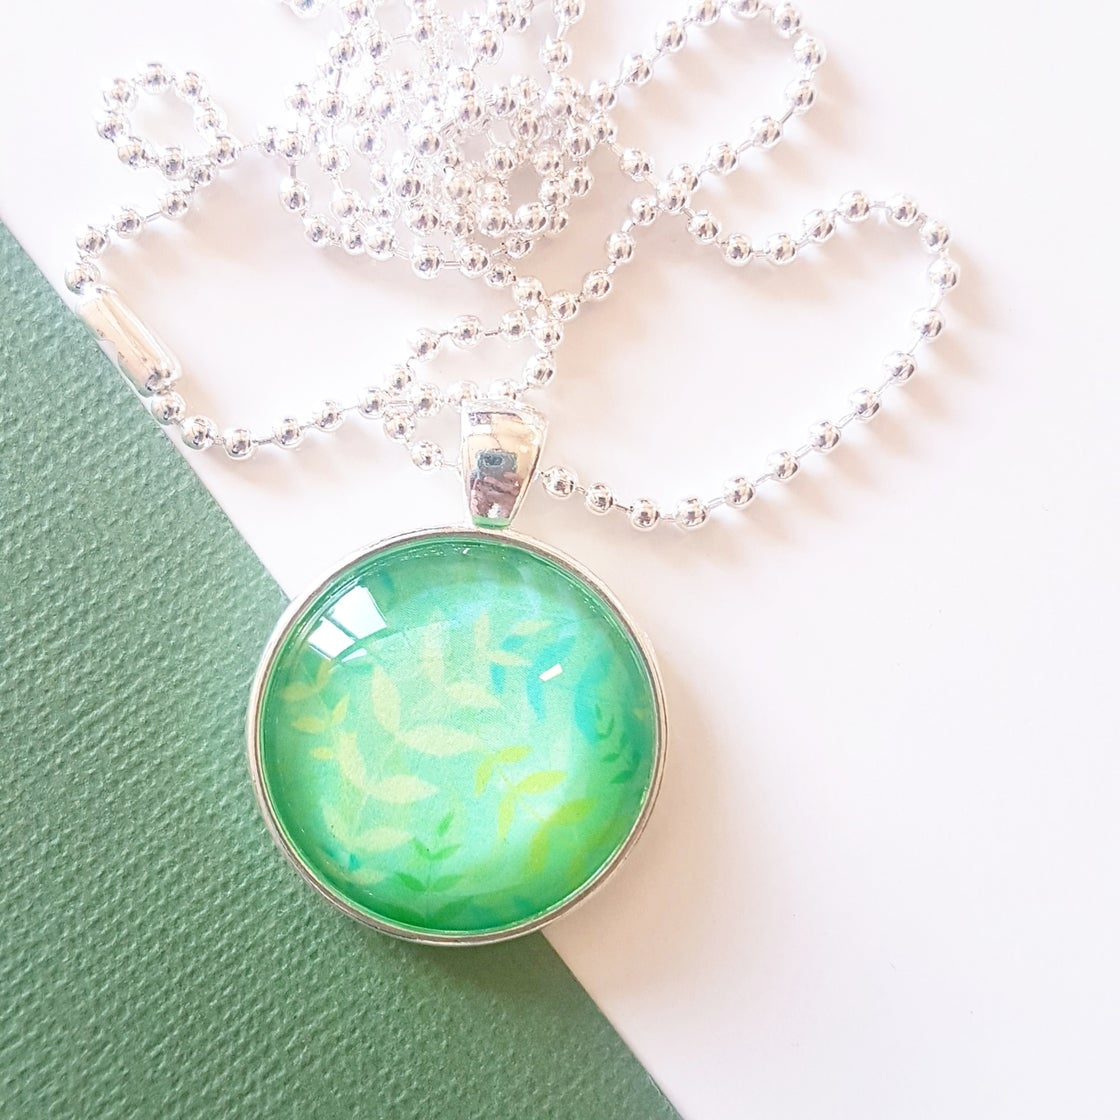 Image of 1inch pendant - Misty Leaves